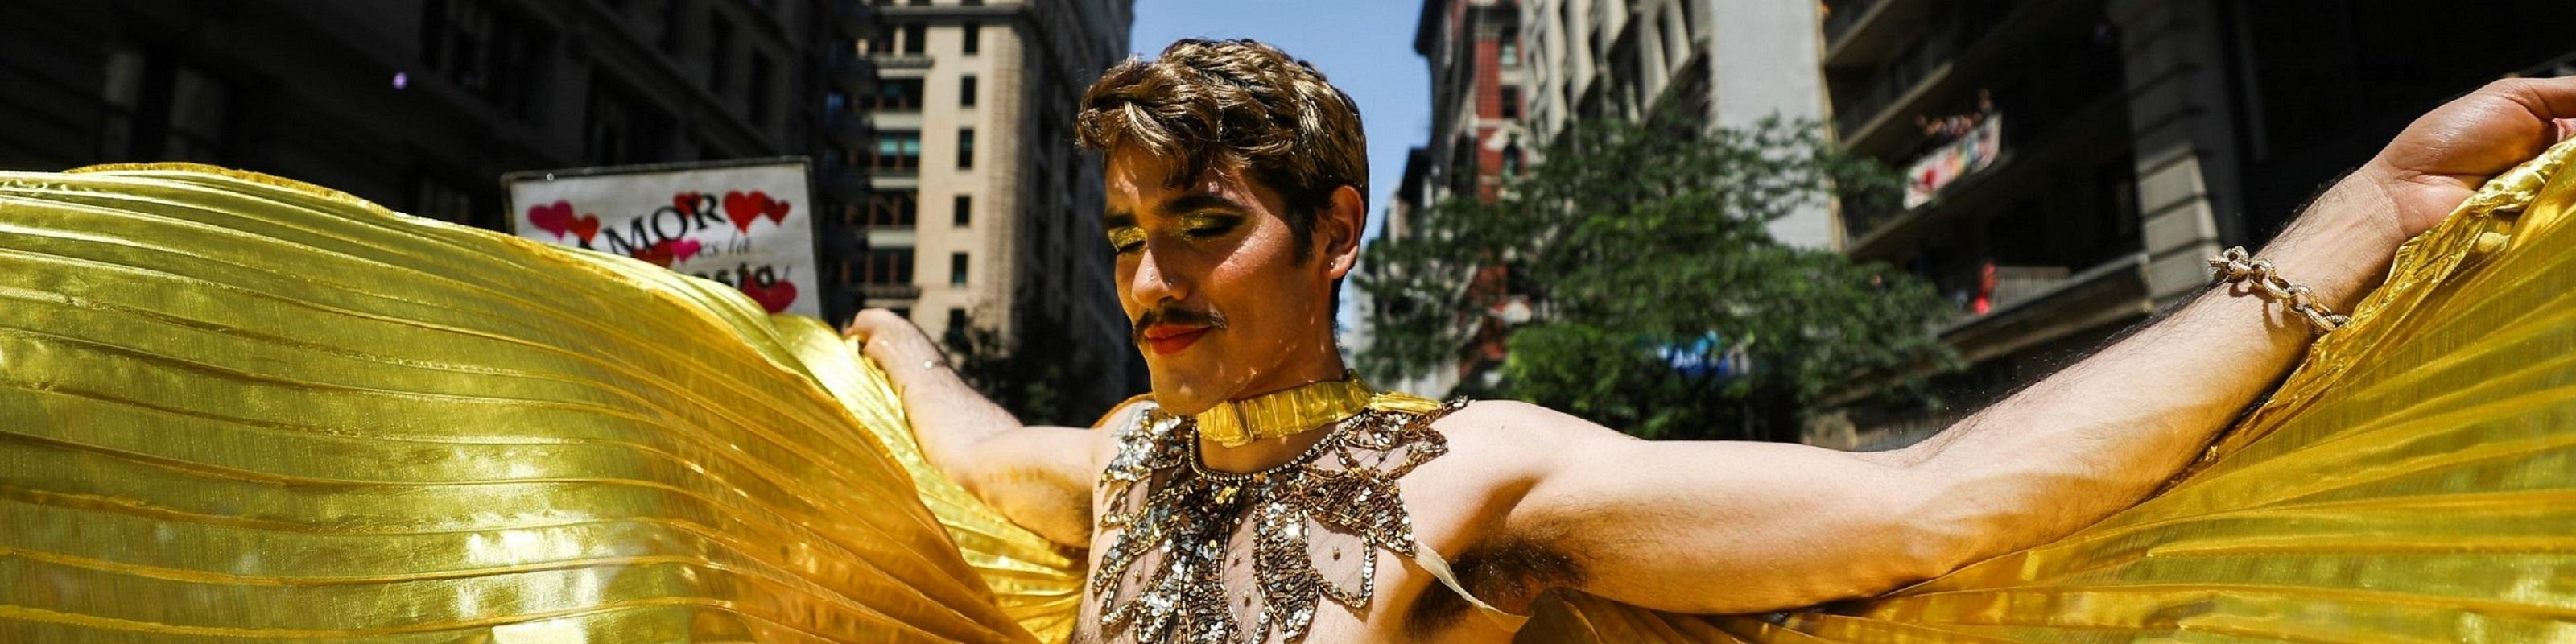 Pride parade in New York City, United States. Photo: Kevincartr / Shutterstock